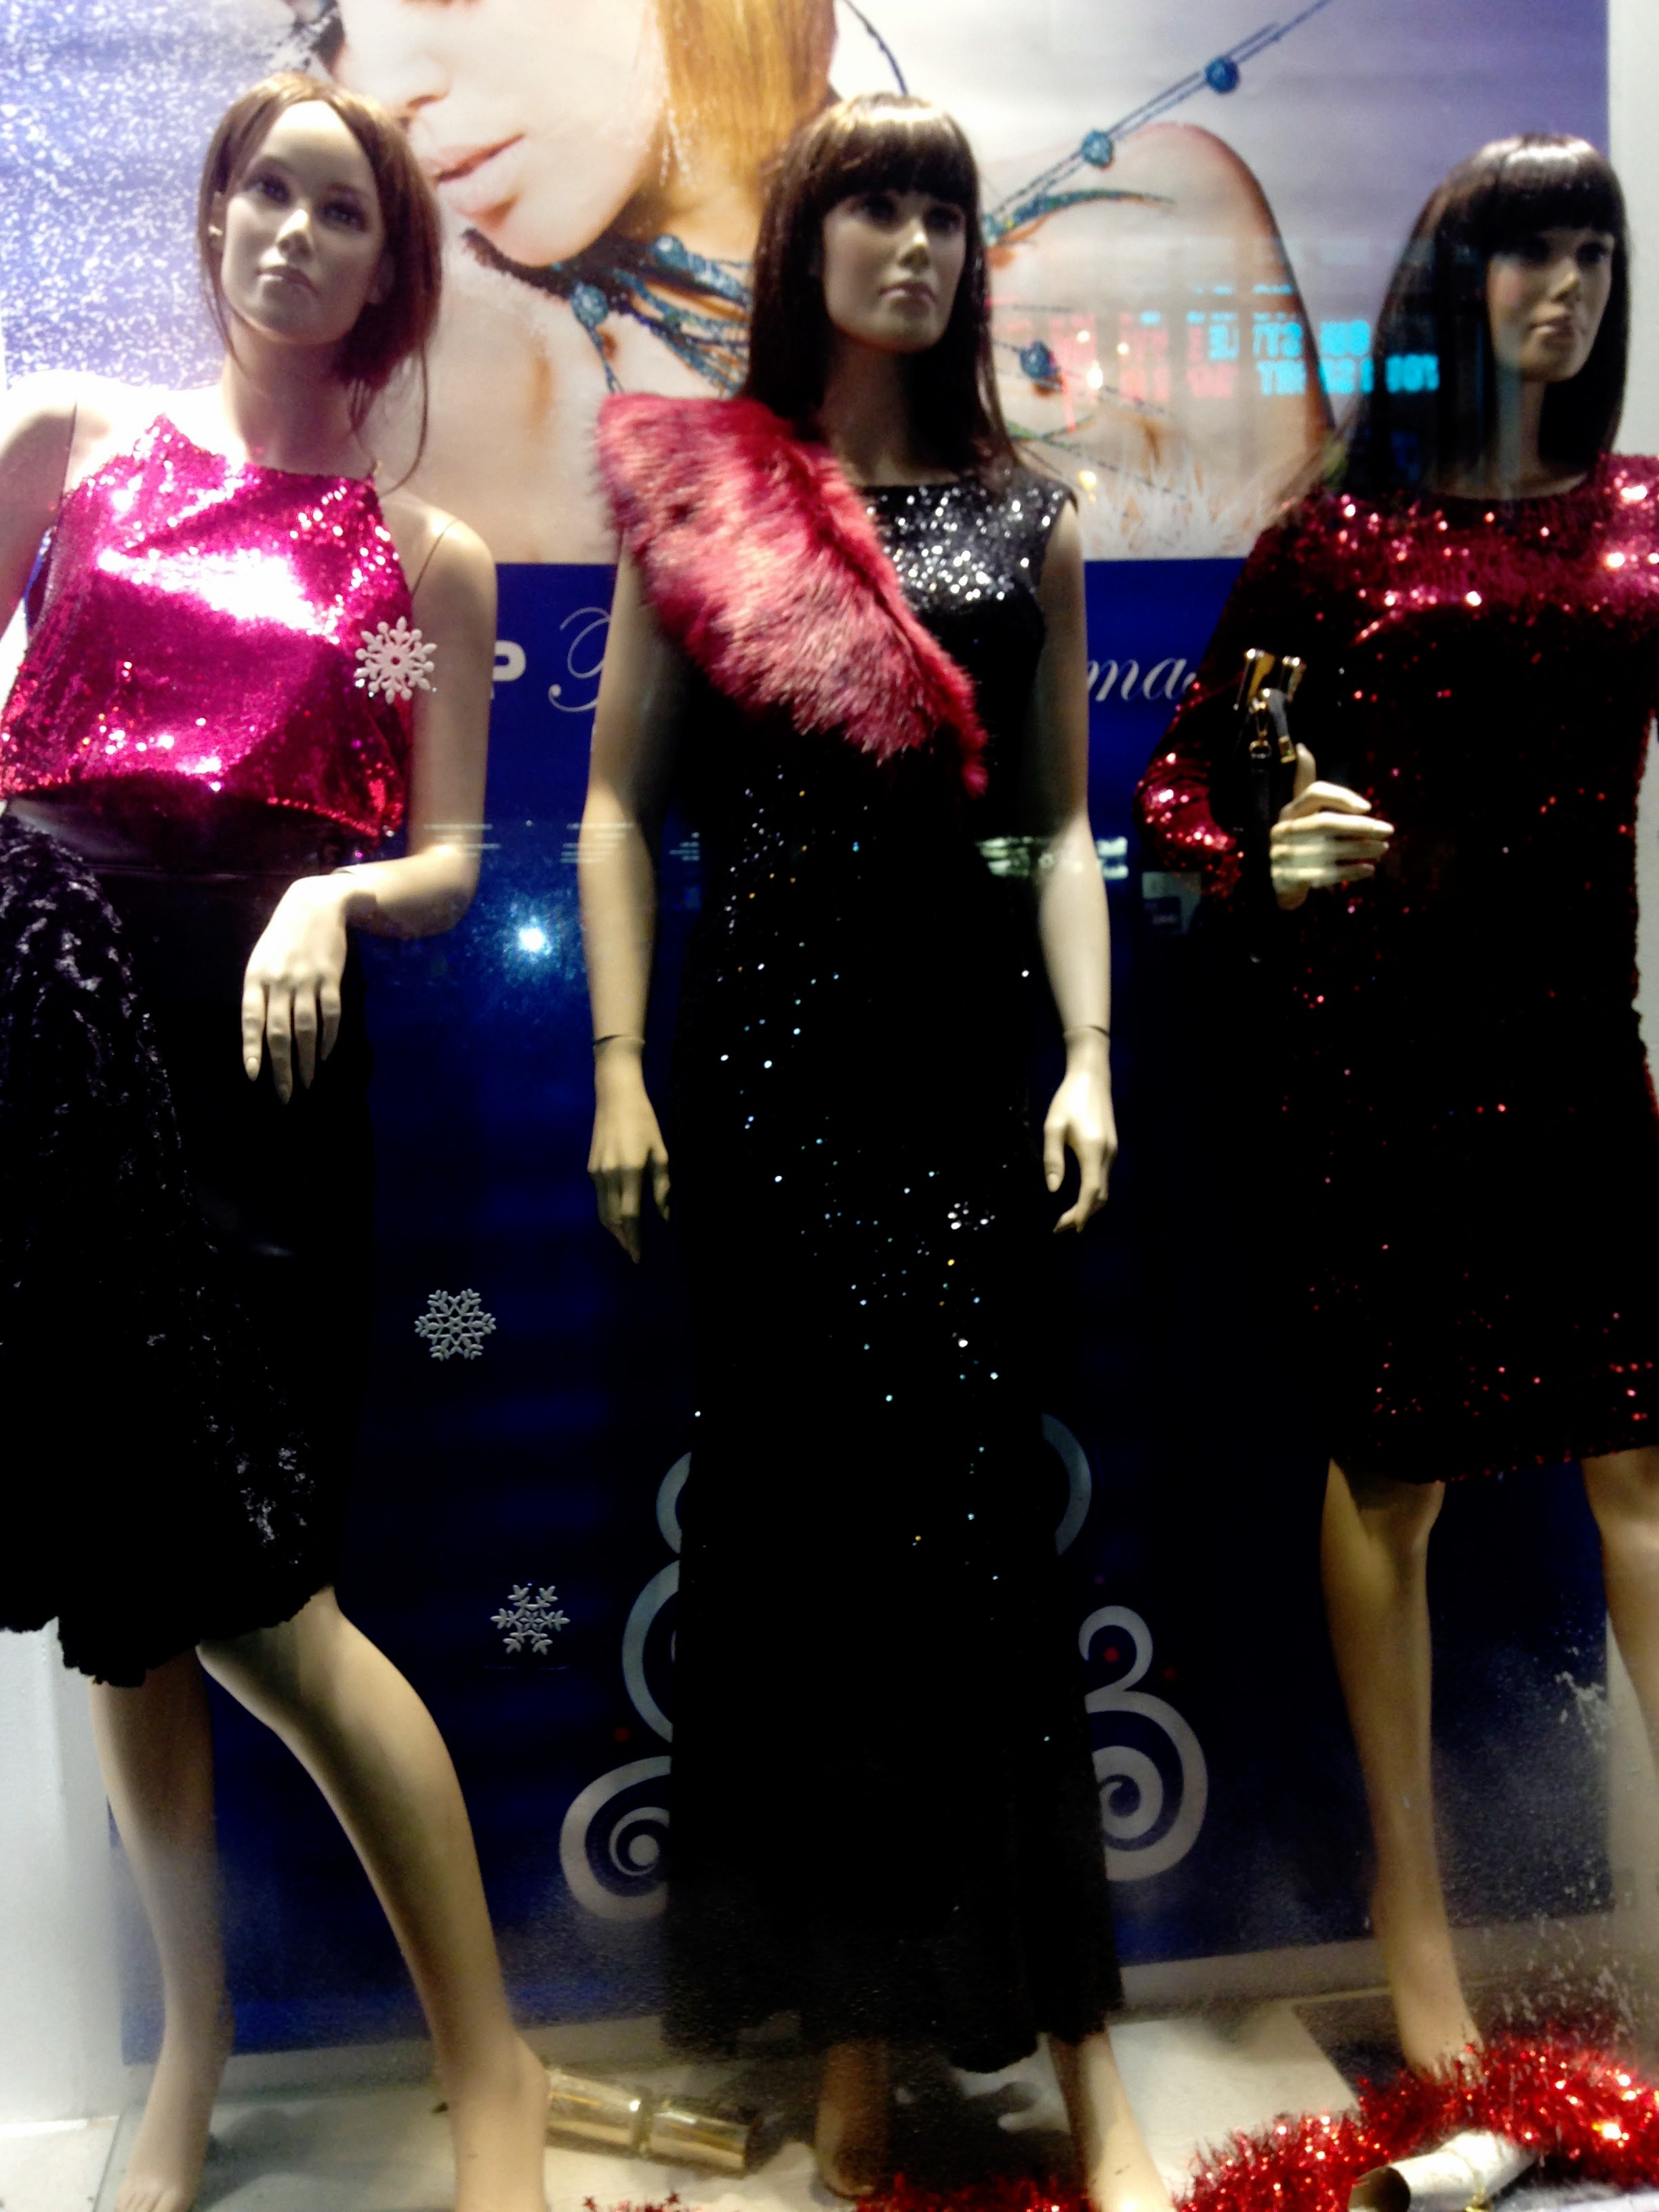 Red combination ensemble from Swamp Dublin. Red sequinned knee length dress €60.00. Long dress €120.00. Red top €30.00 and red fur stole €25.00. Enjoy!